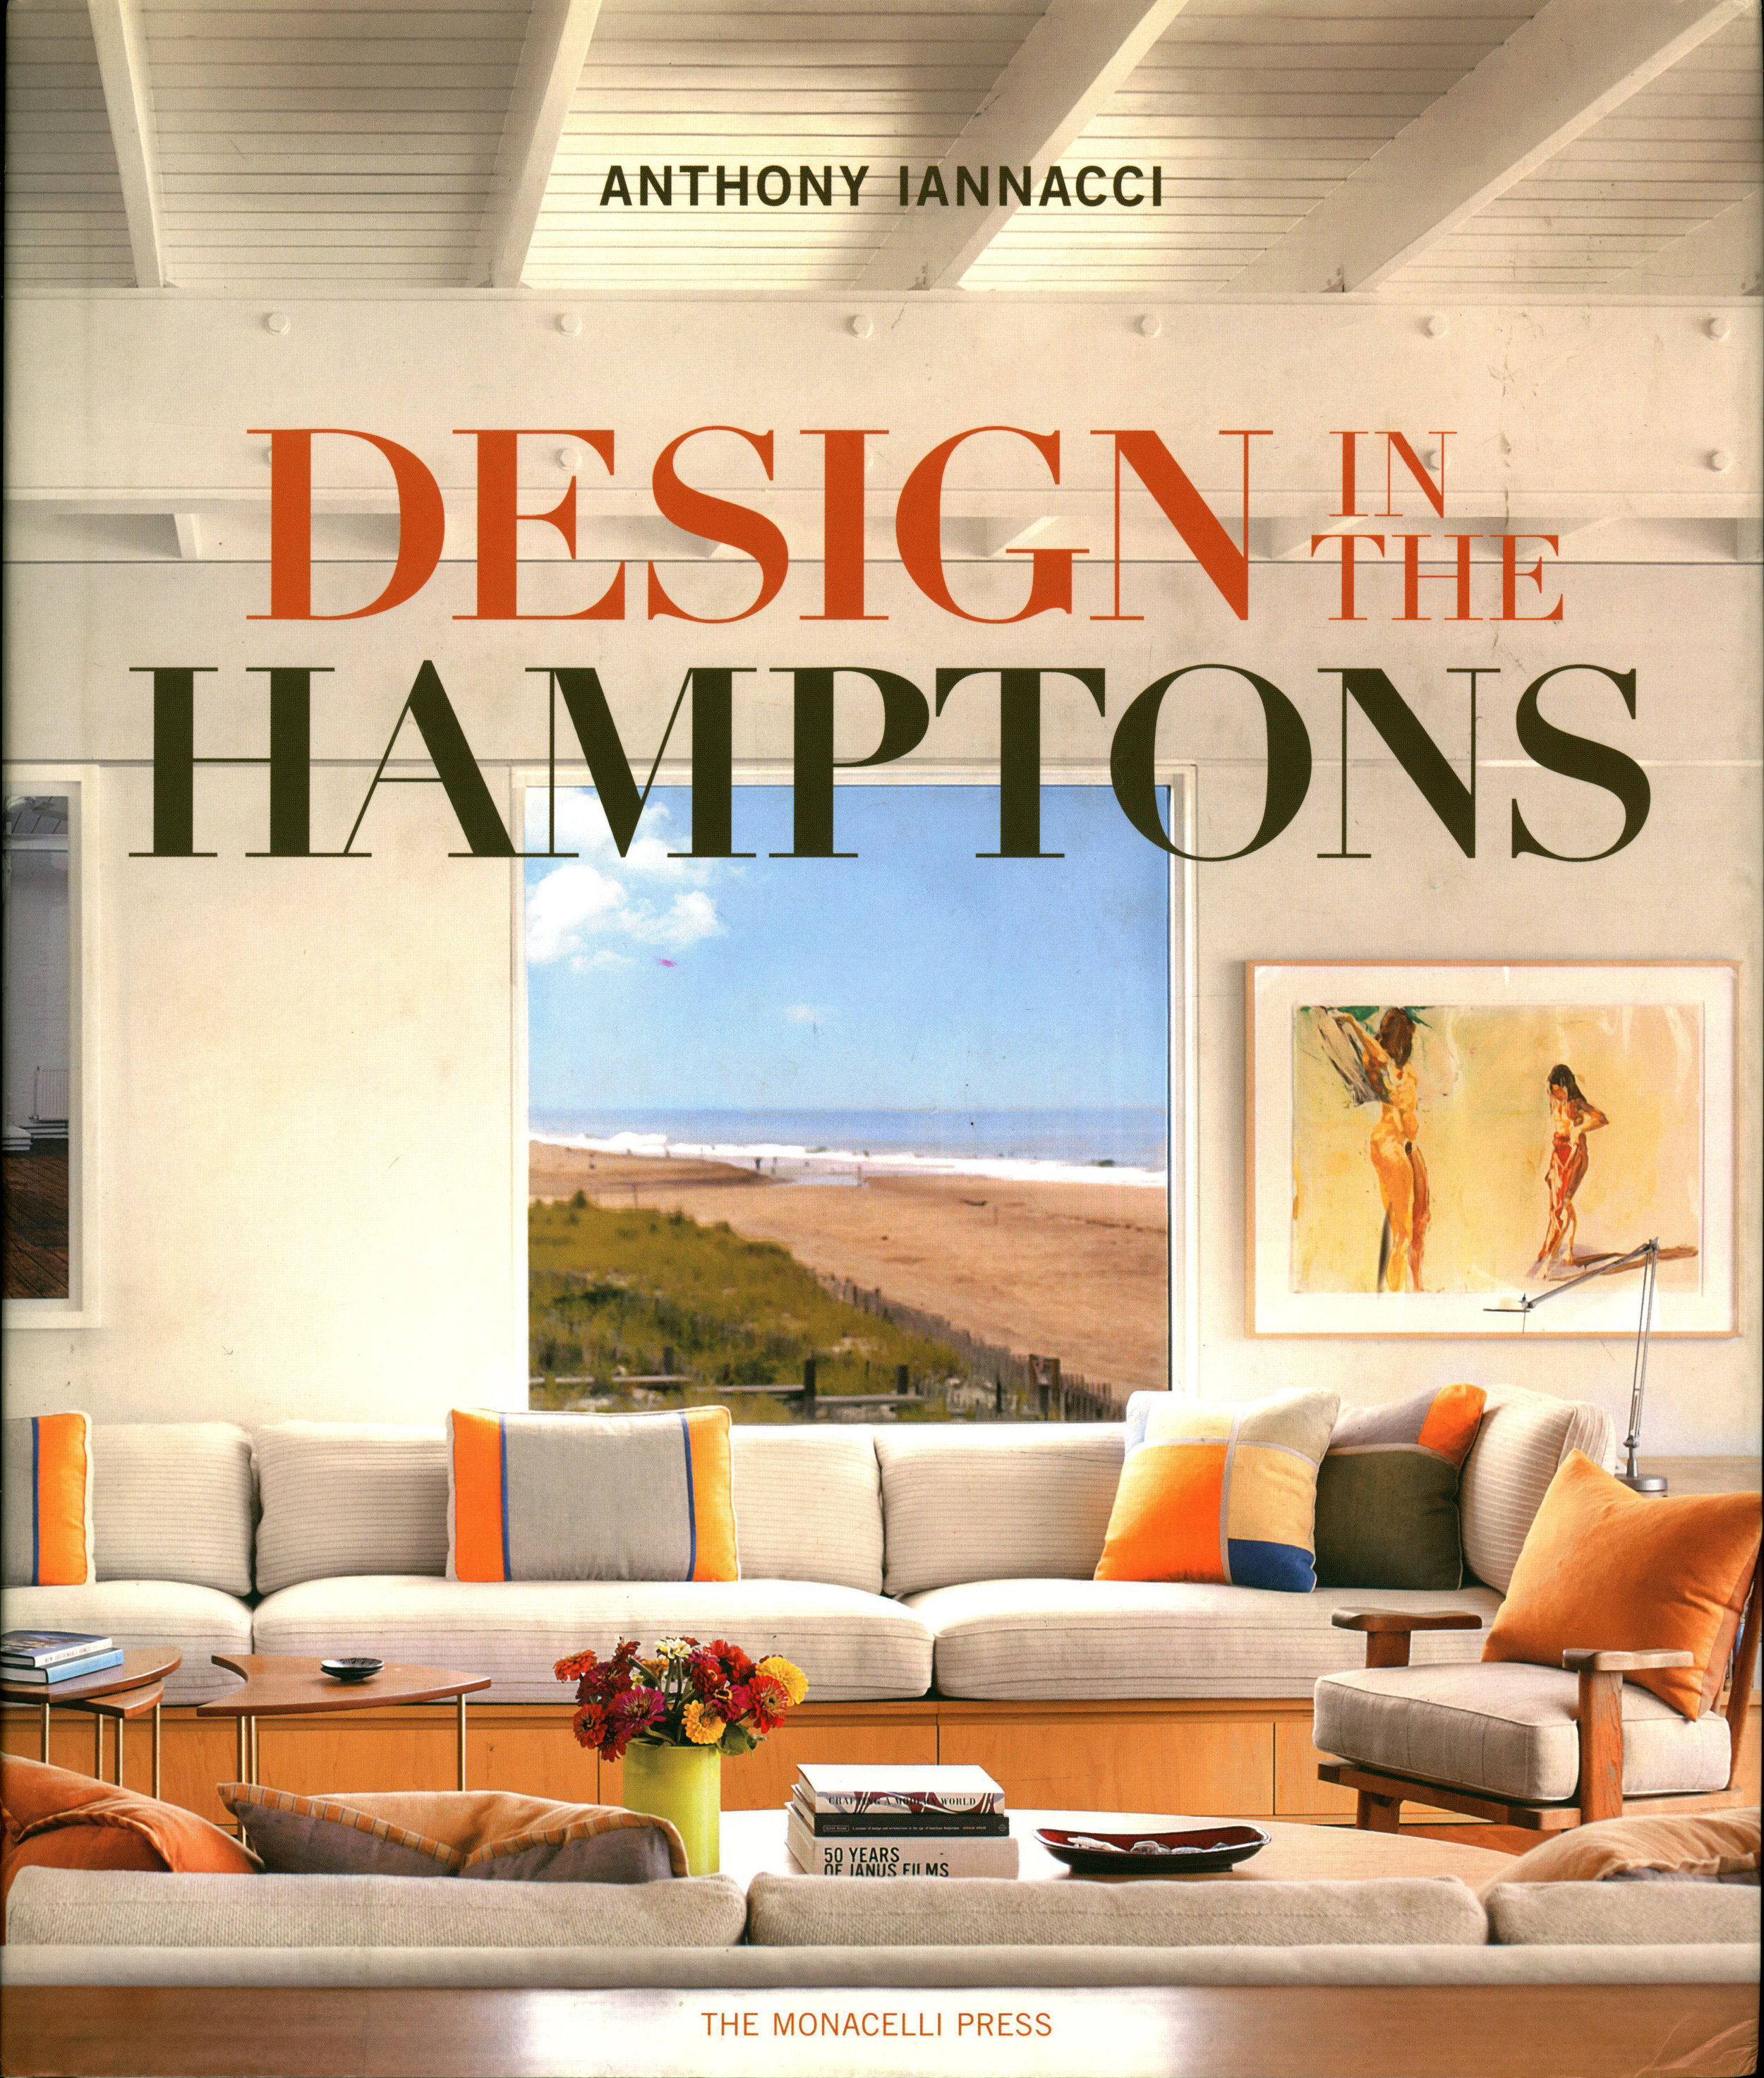 Design in the hamptons cover.jpg